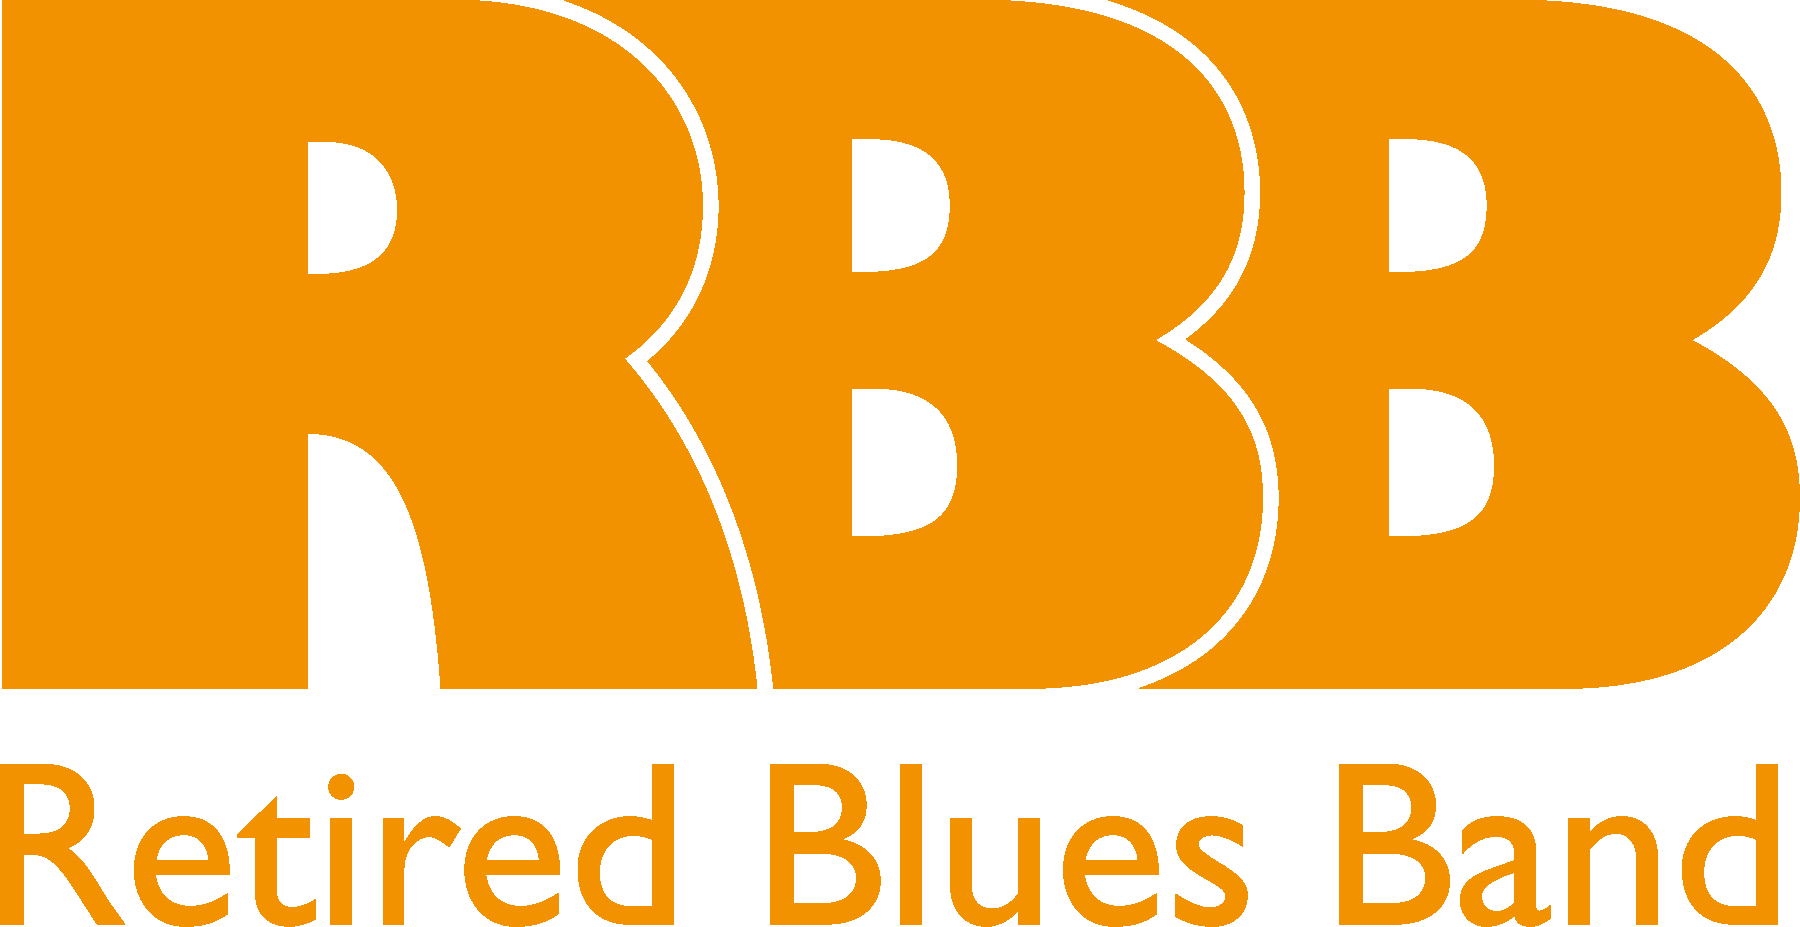 RBB - Reriered Blues Band